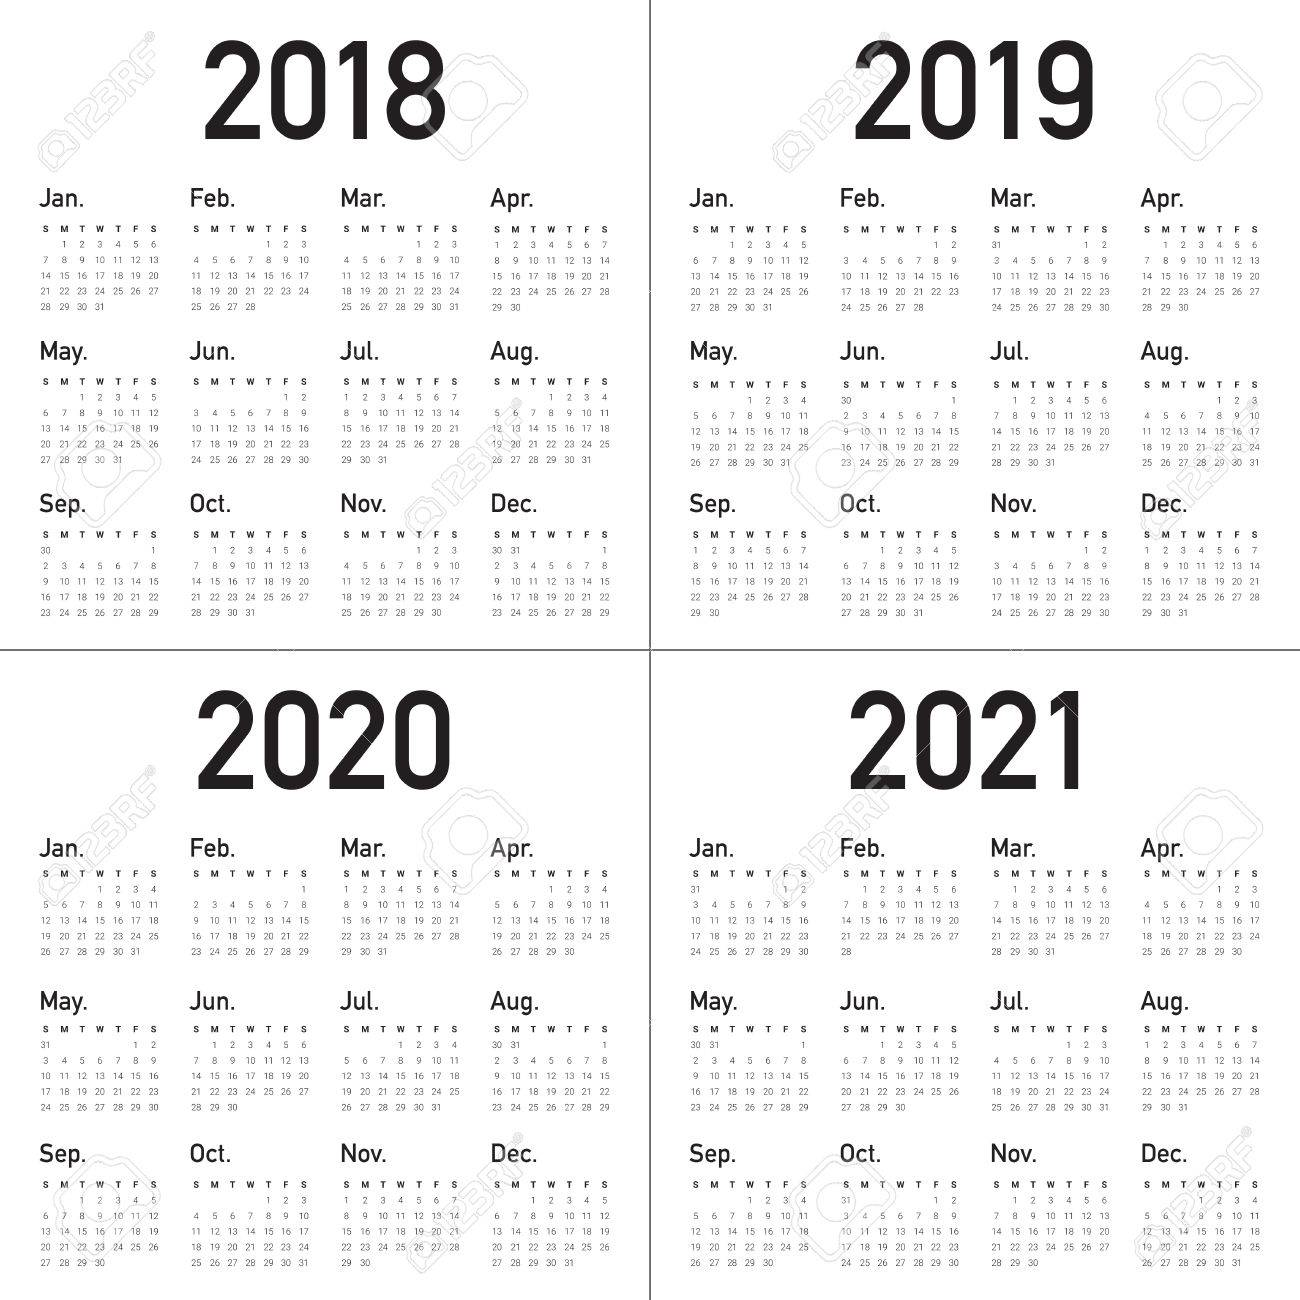 Calendario 2020 Vector Gratis.Year 2018 2019 2020 2021 Calendar Vector Design Template Simple